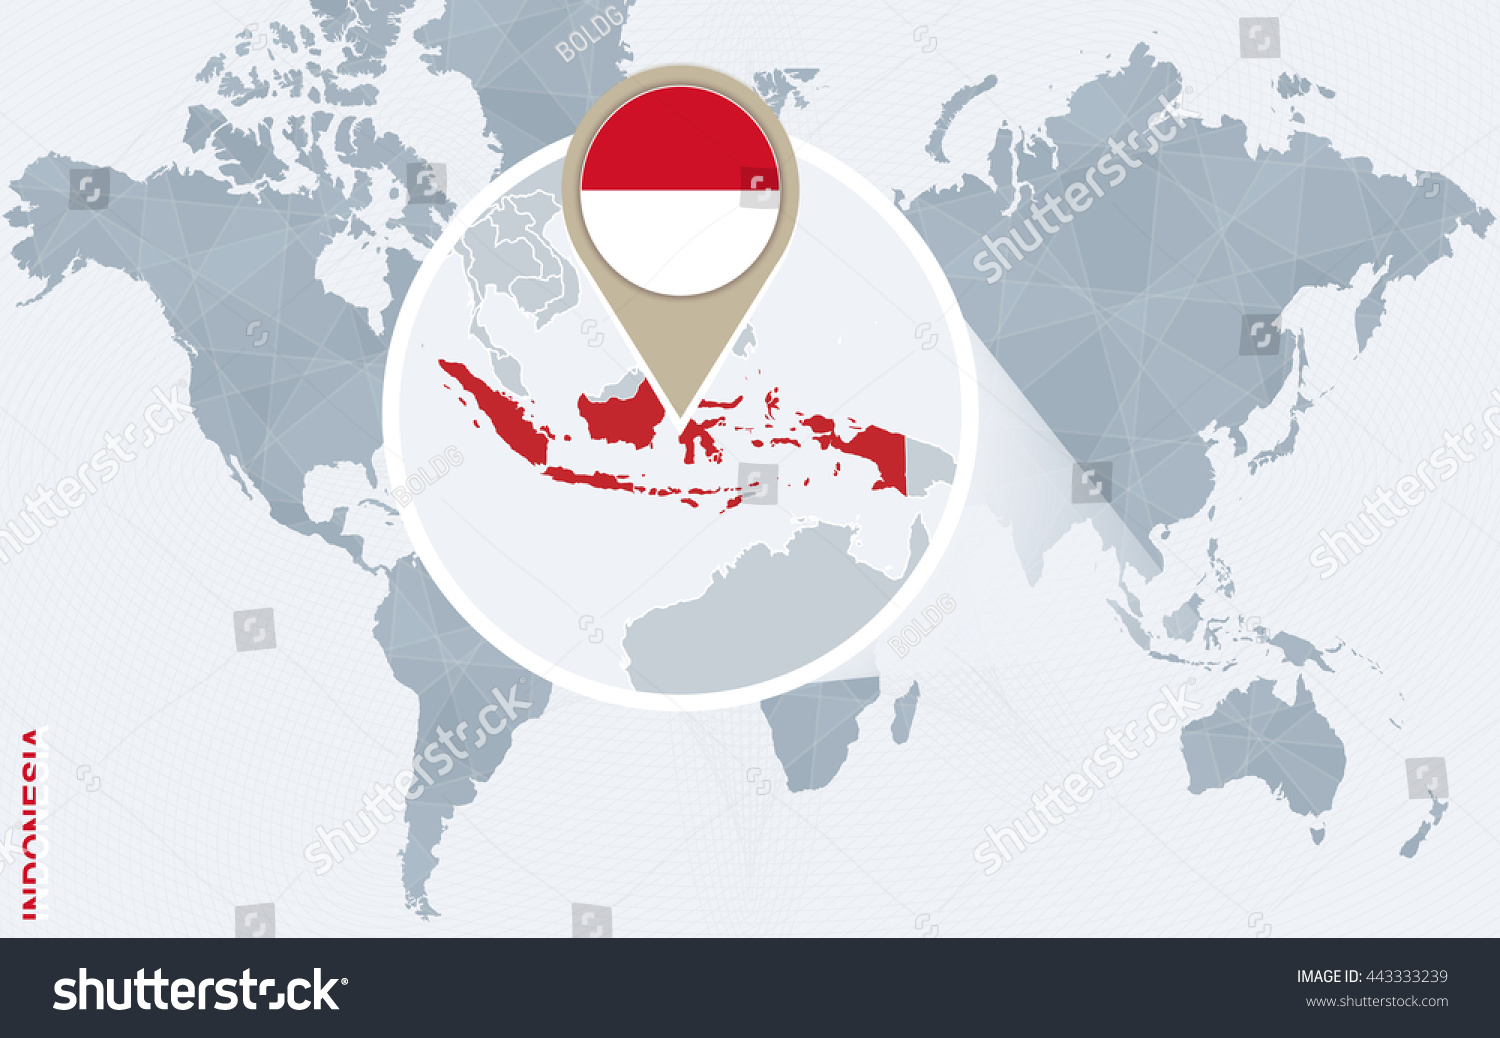 Abstract Blue World Map Magnified Indonesia Stock Vector 443333239 ...